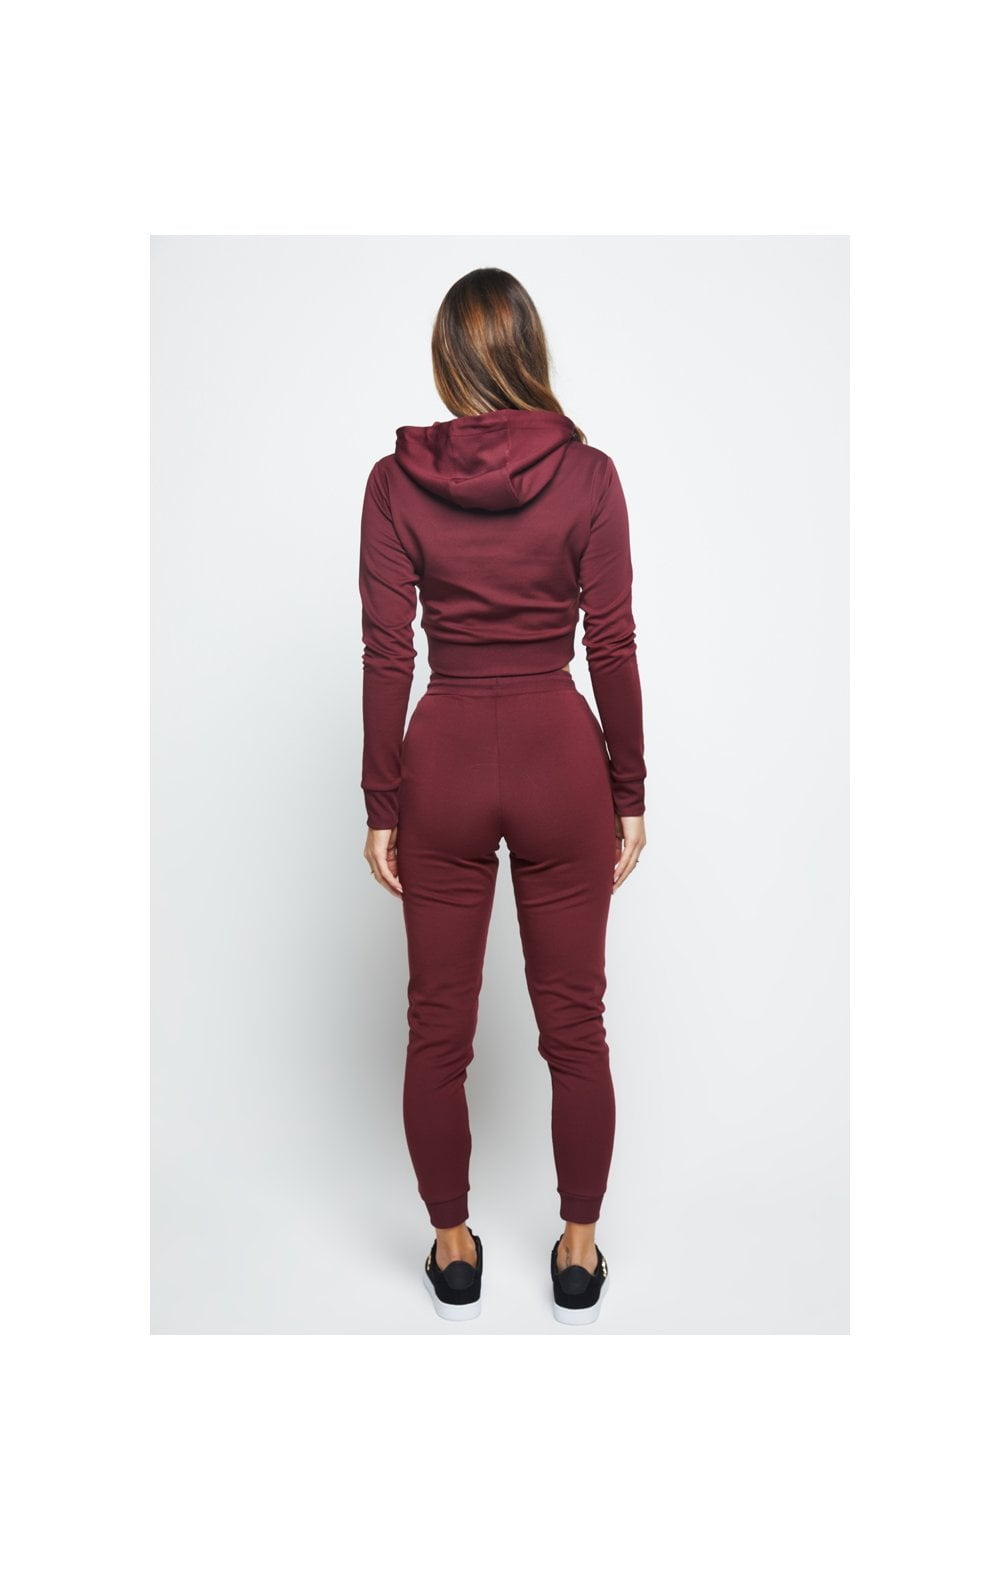 Load image into Gallery viewer, SikSilk Eyelet Mesh Track Top - Burgundy (6)